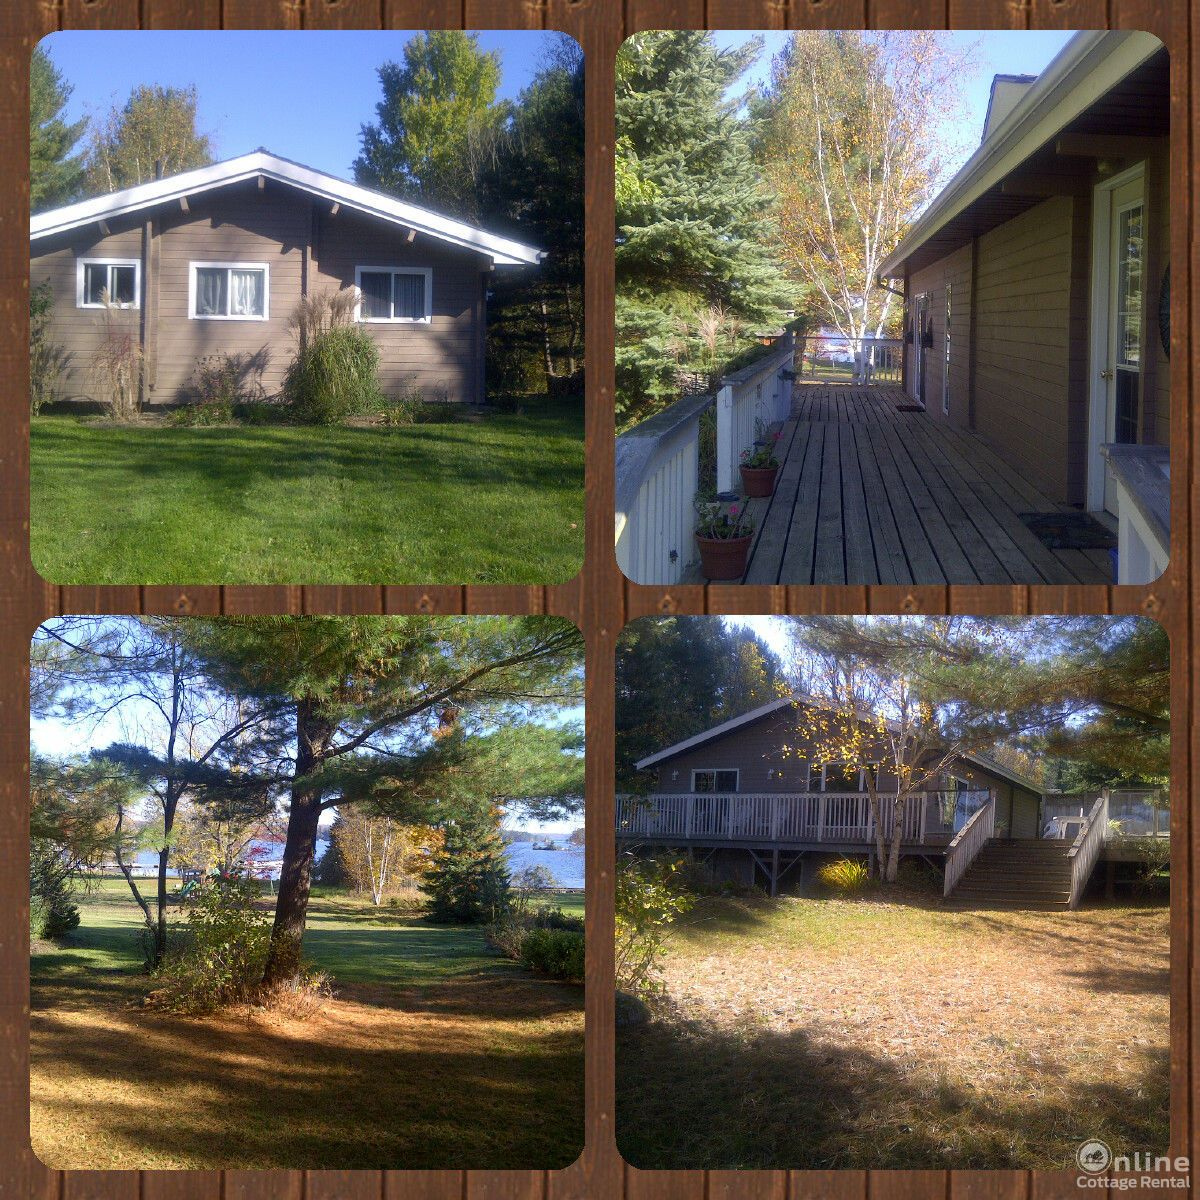 rentals care home ccr ontario management property cottage winter